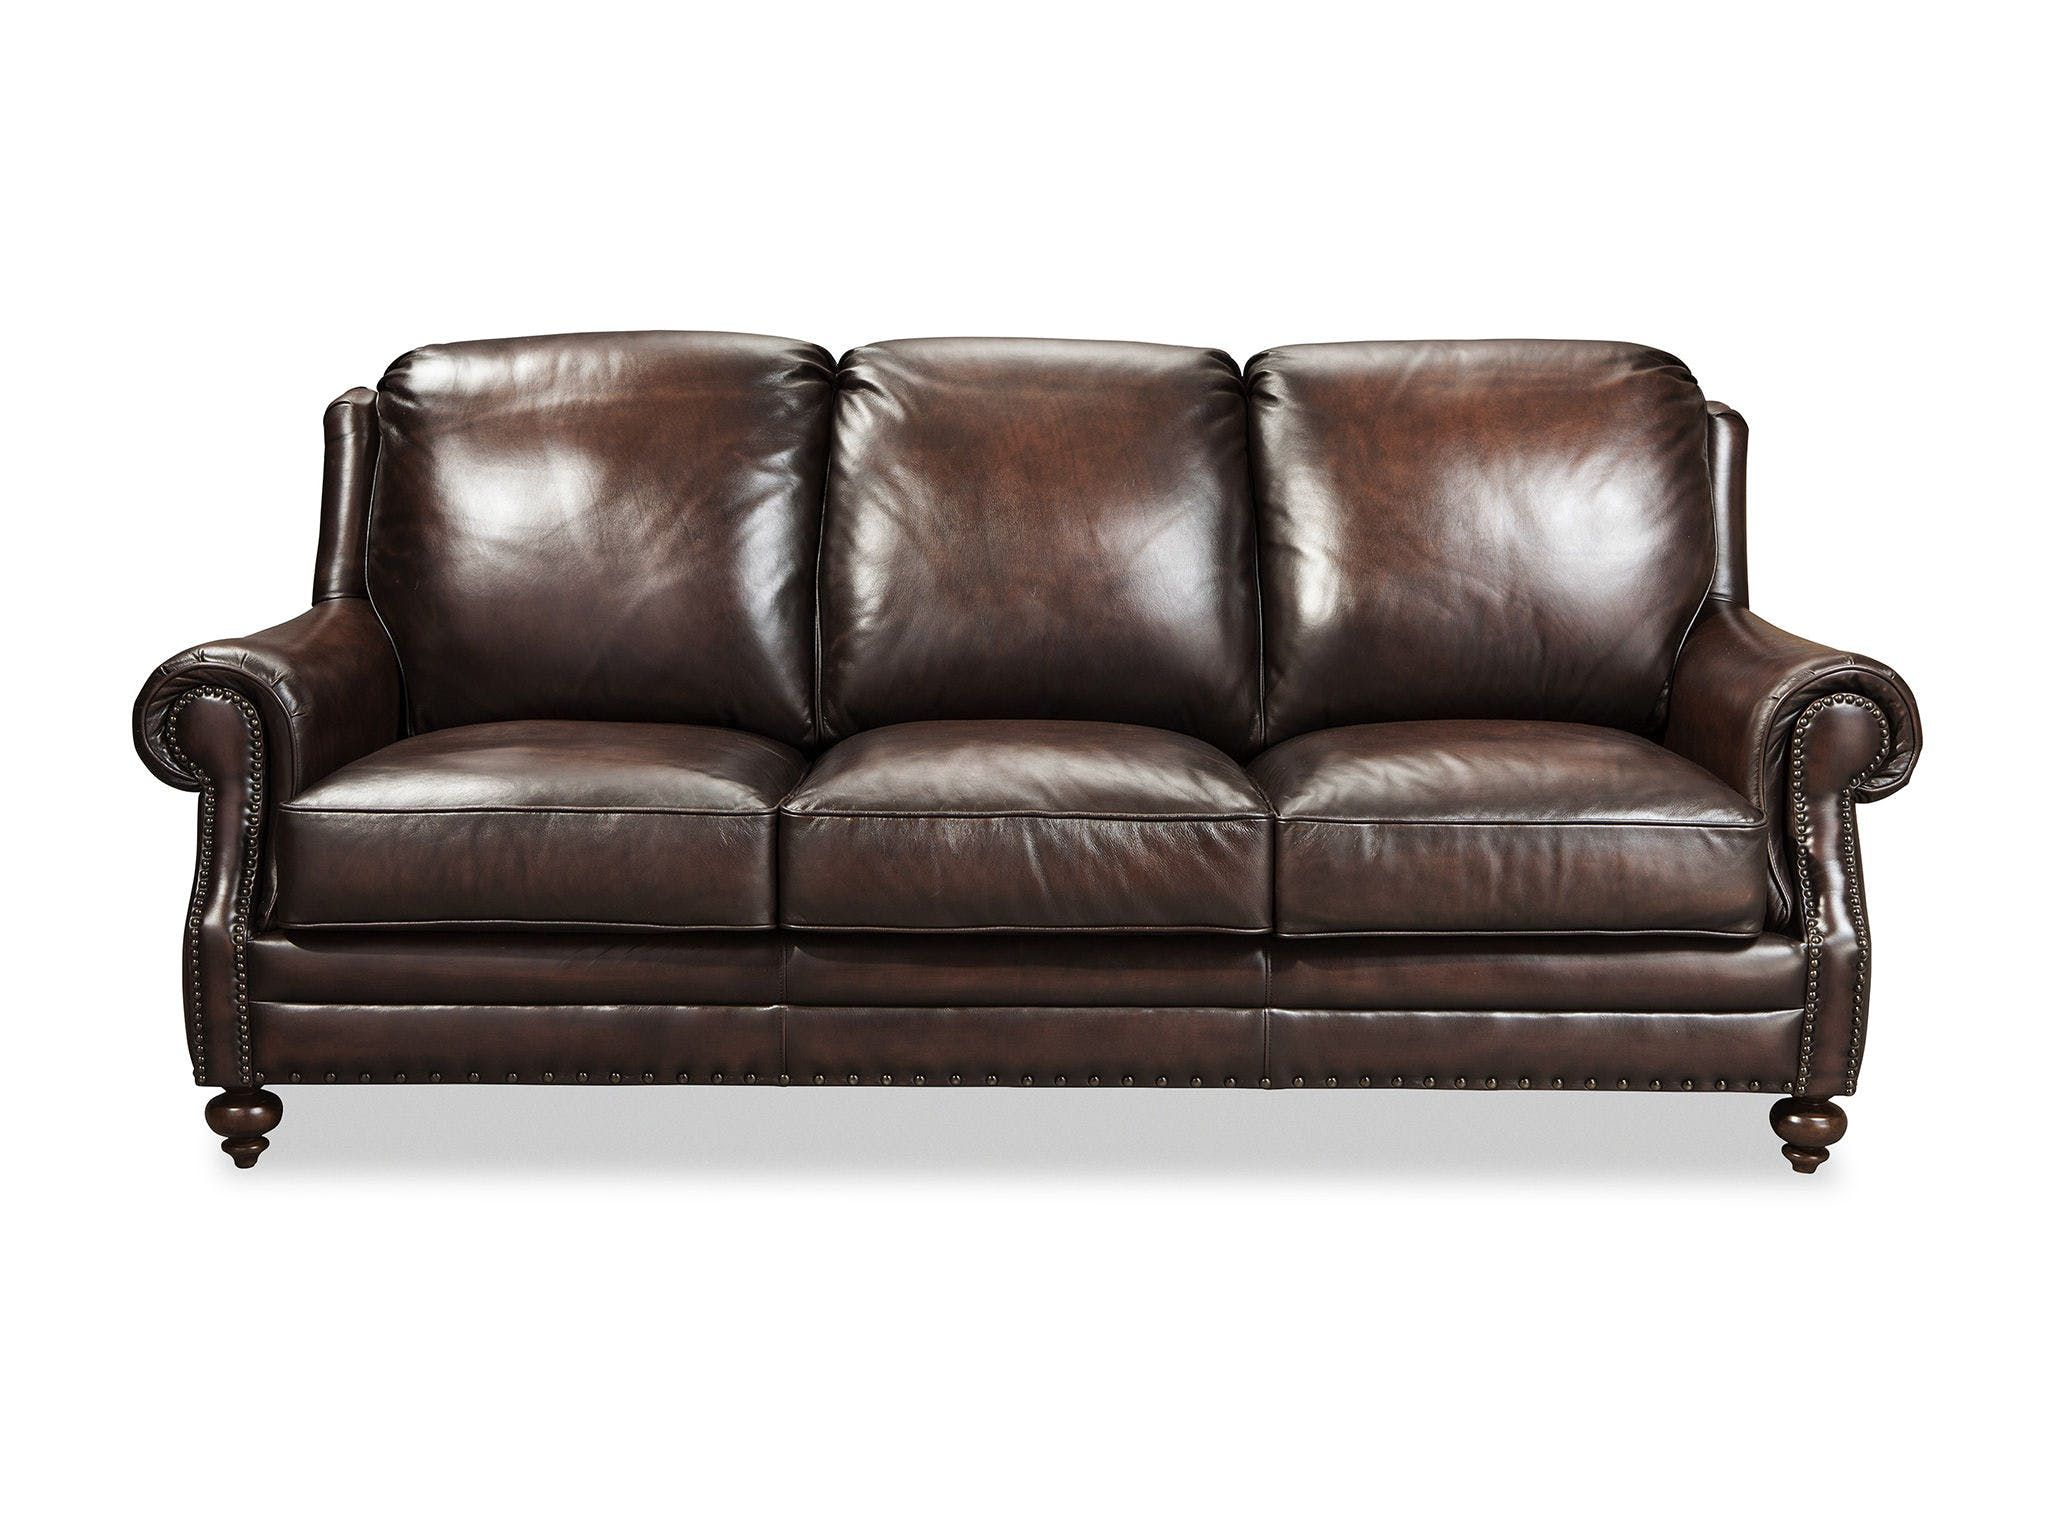 A Beautifully Tailored Clic 8 Way Hand Tied Leather Sofa